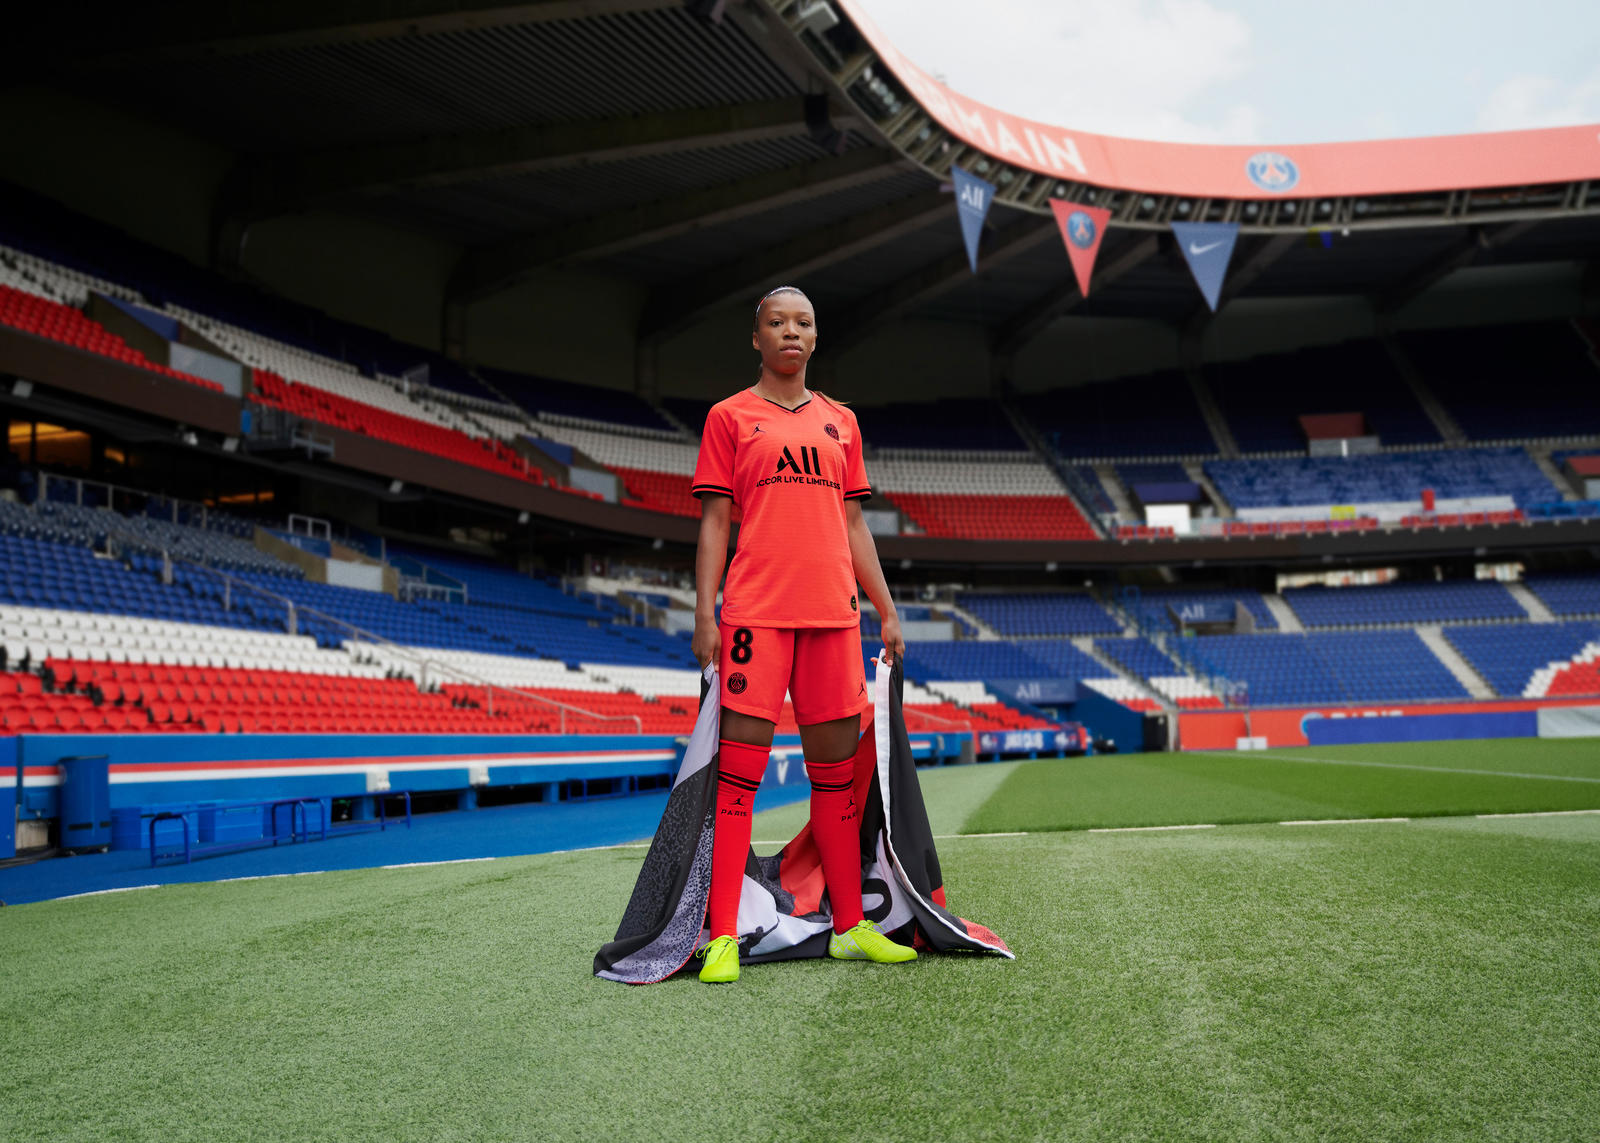 Jordan Brand Paris Saint-Germain Away Kit 2019-20 4